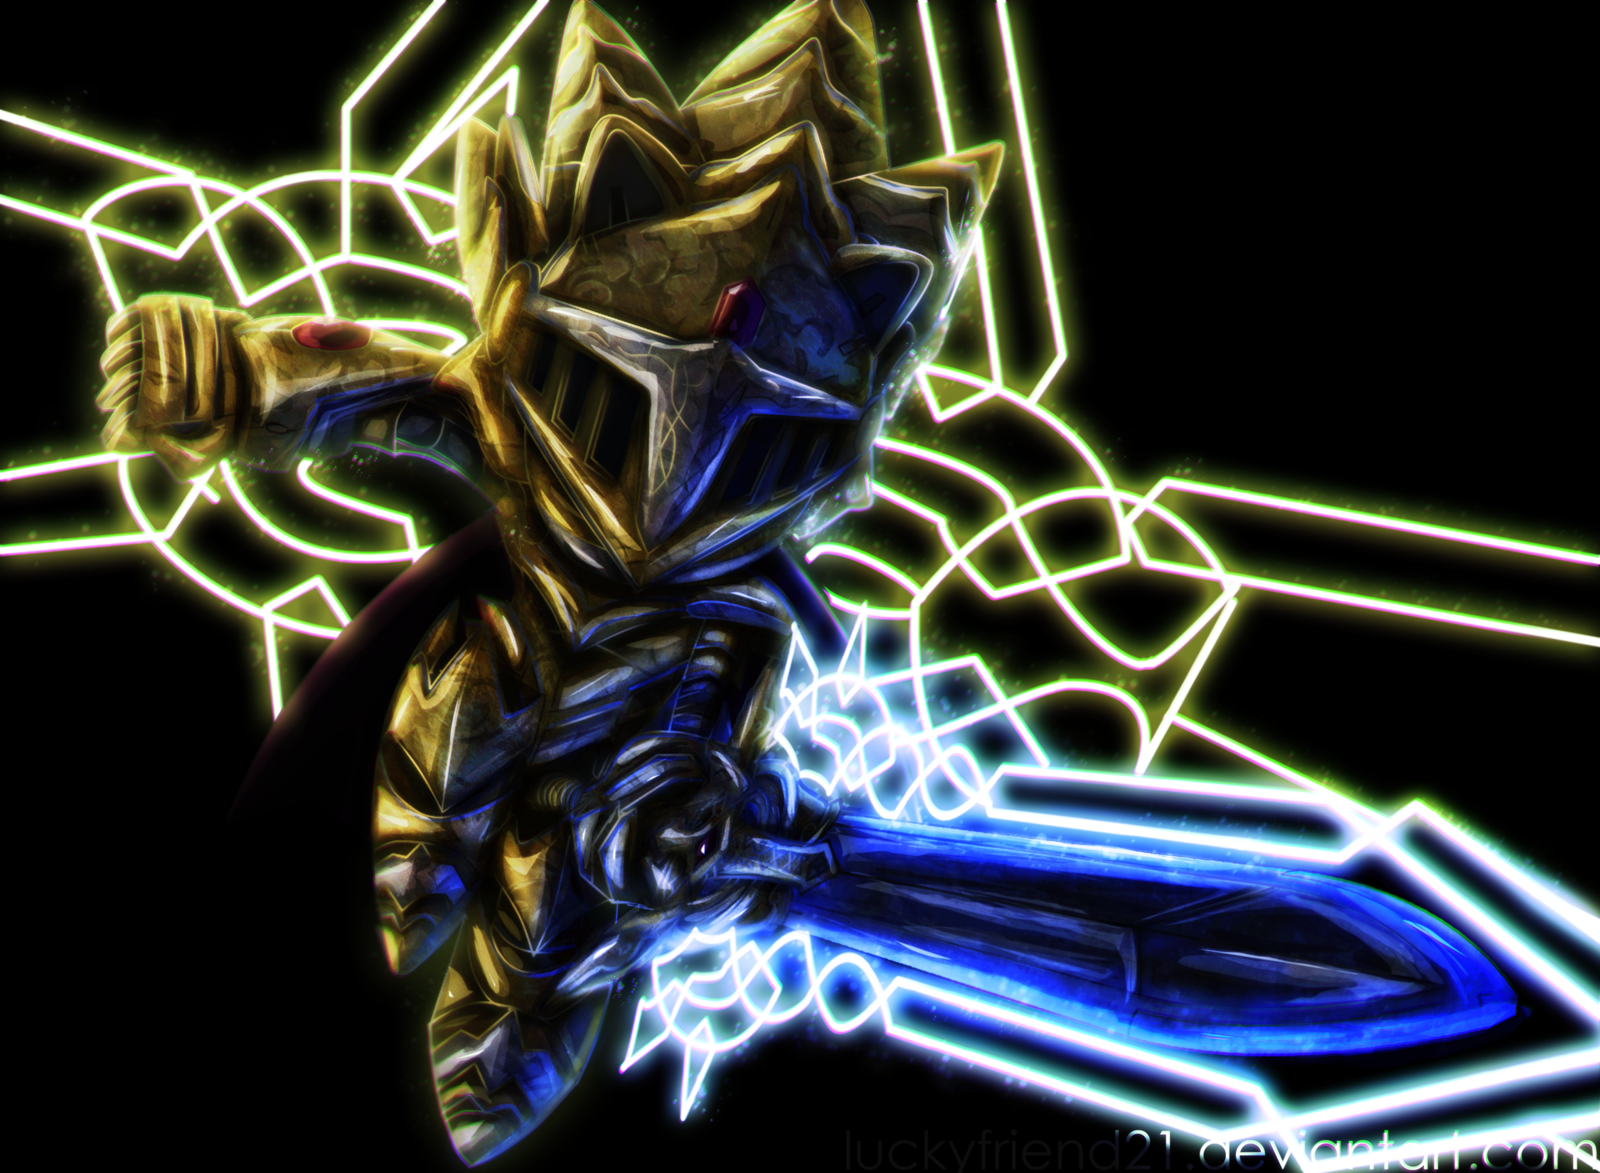 Excalibur Sonic The Hedgehog